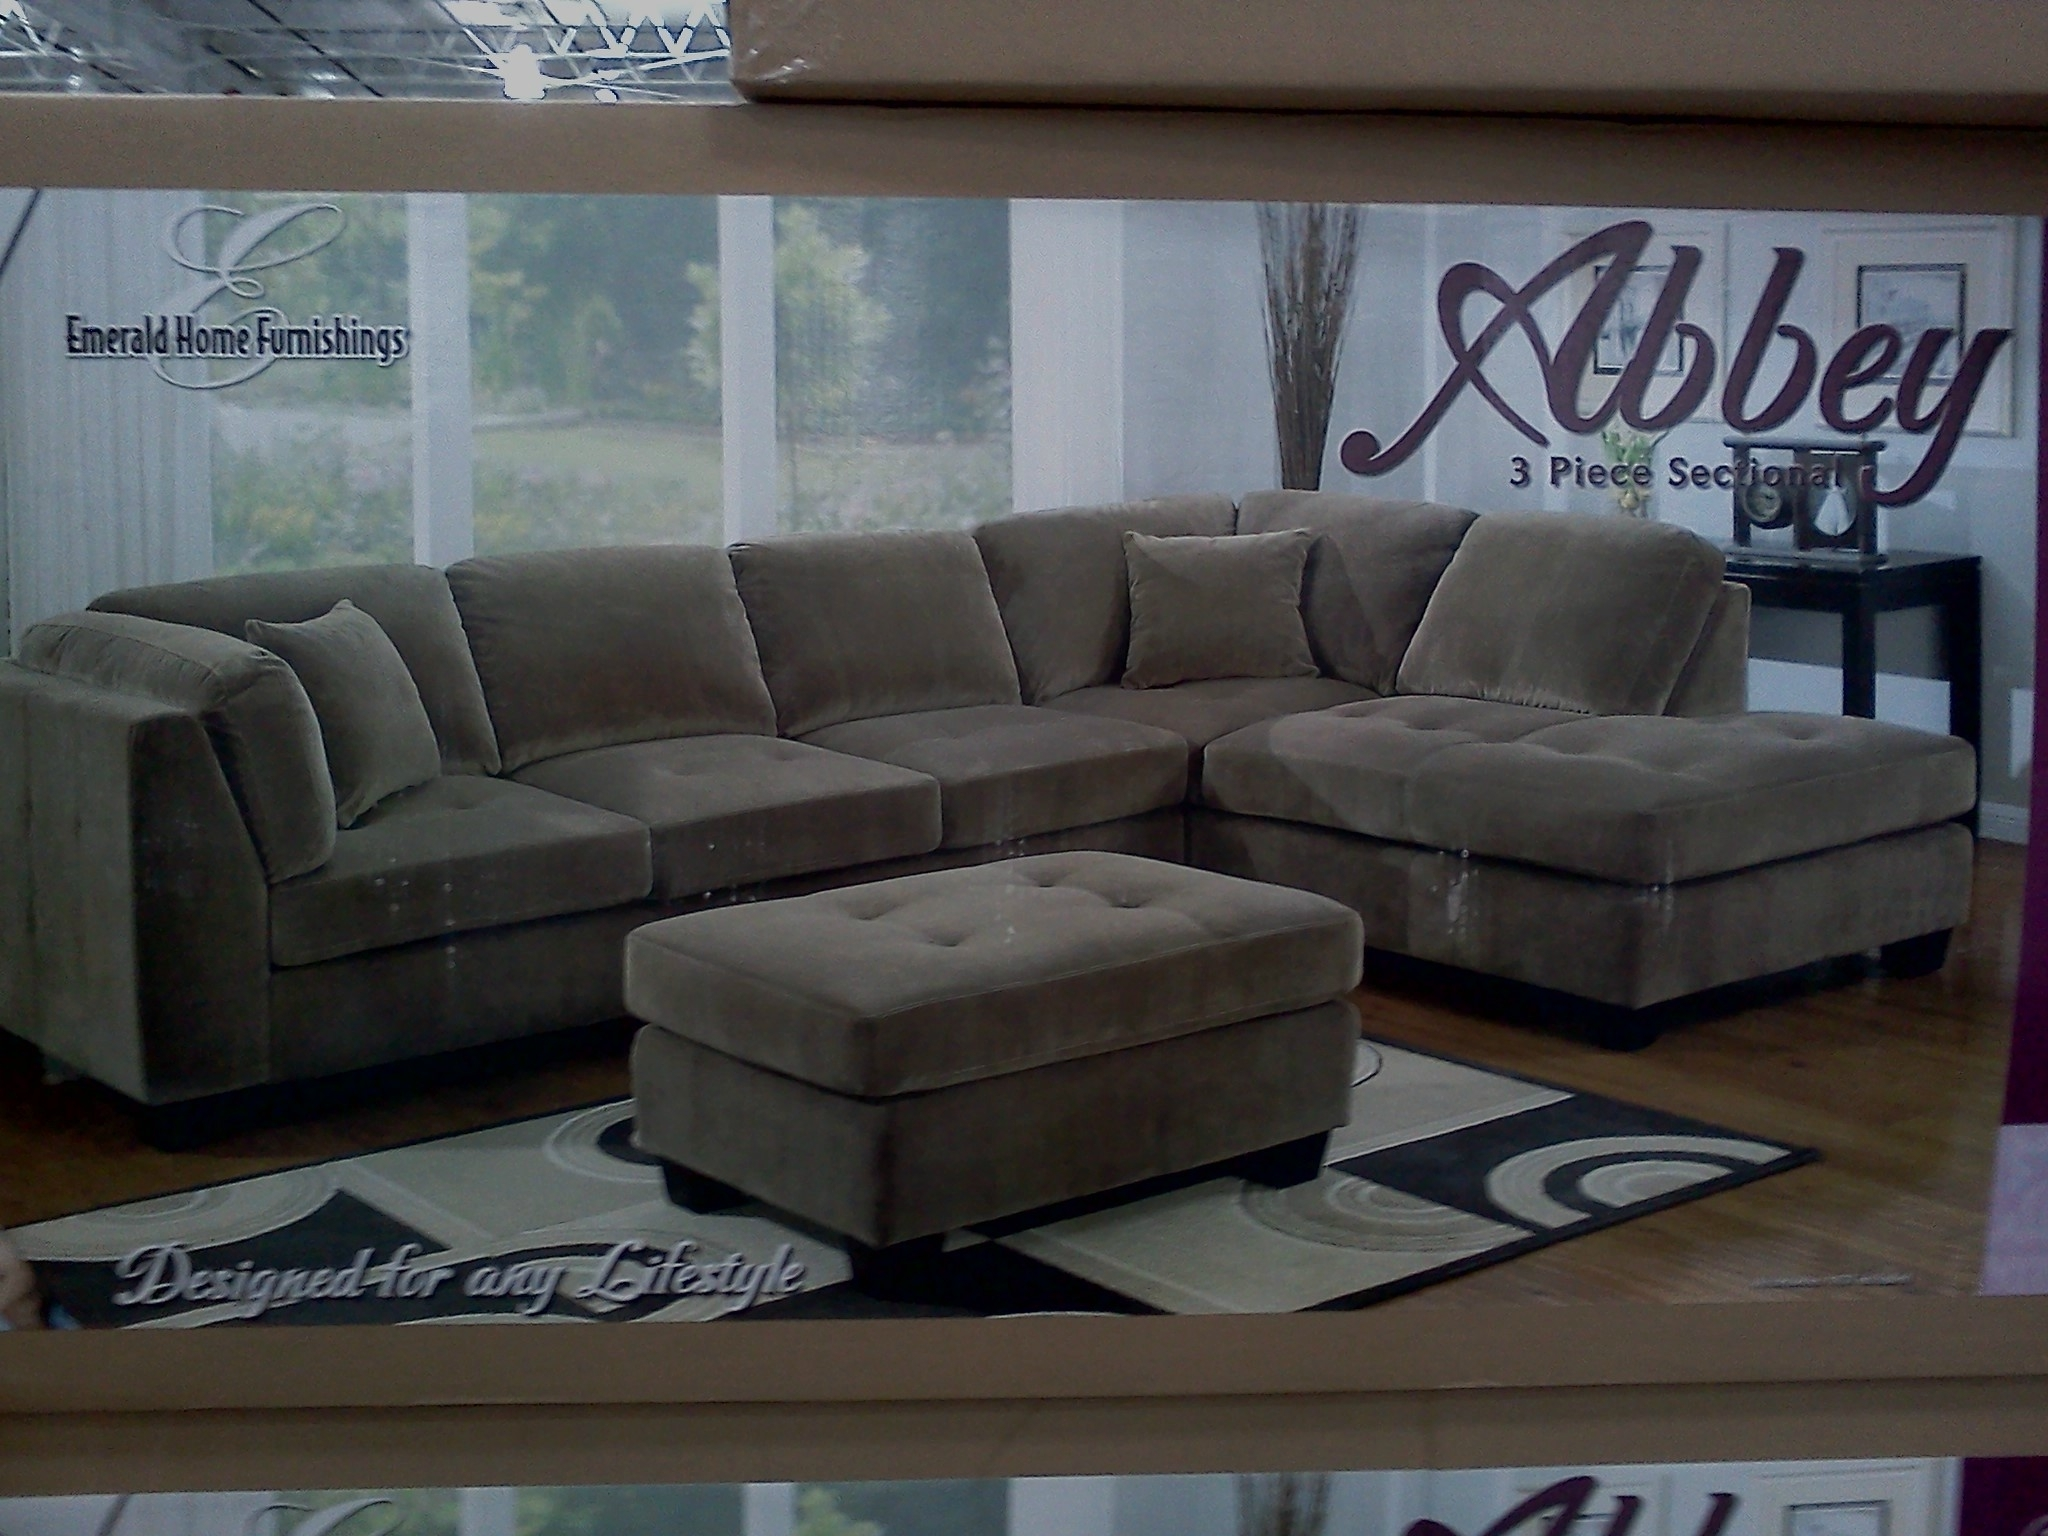 Amusing Sectional Sofas At Costco 11 About Remodel Sectional Sofas With Raleigh Nc Sectional Sofas (Gallery 8 of 10)